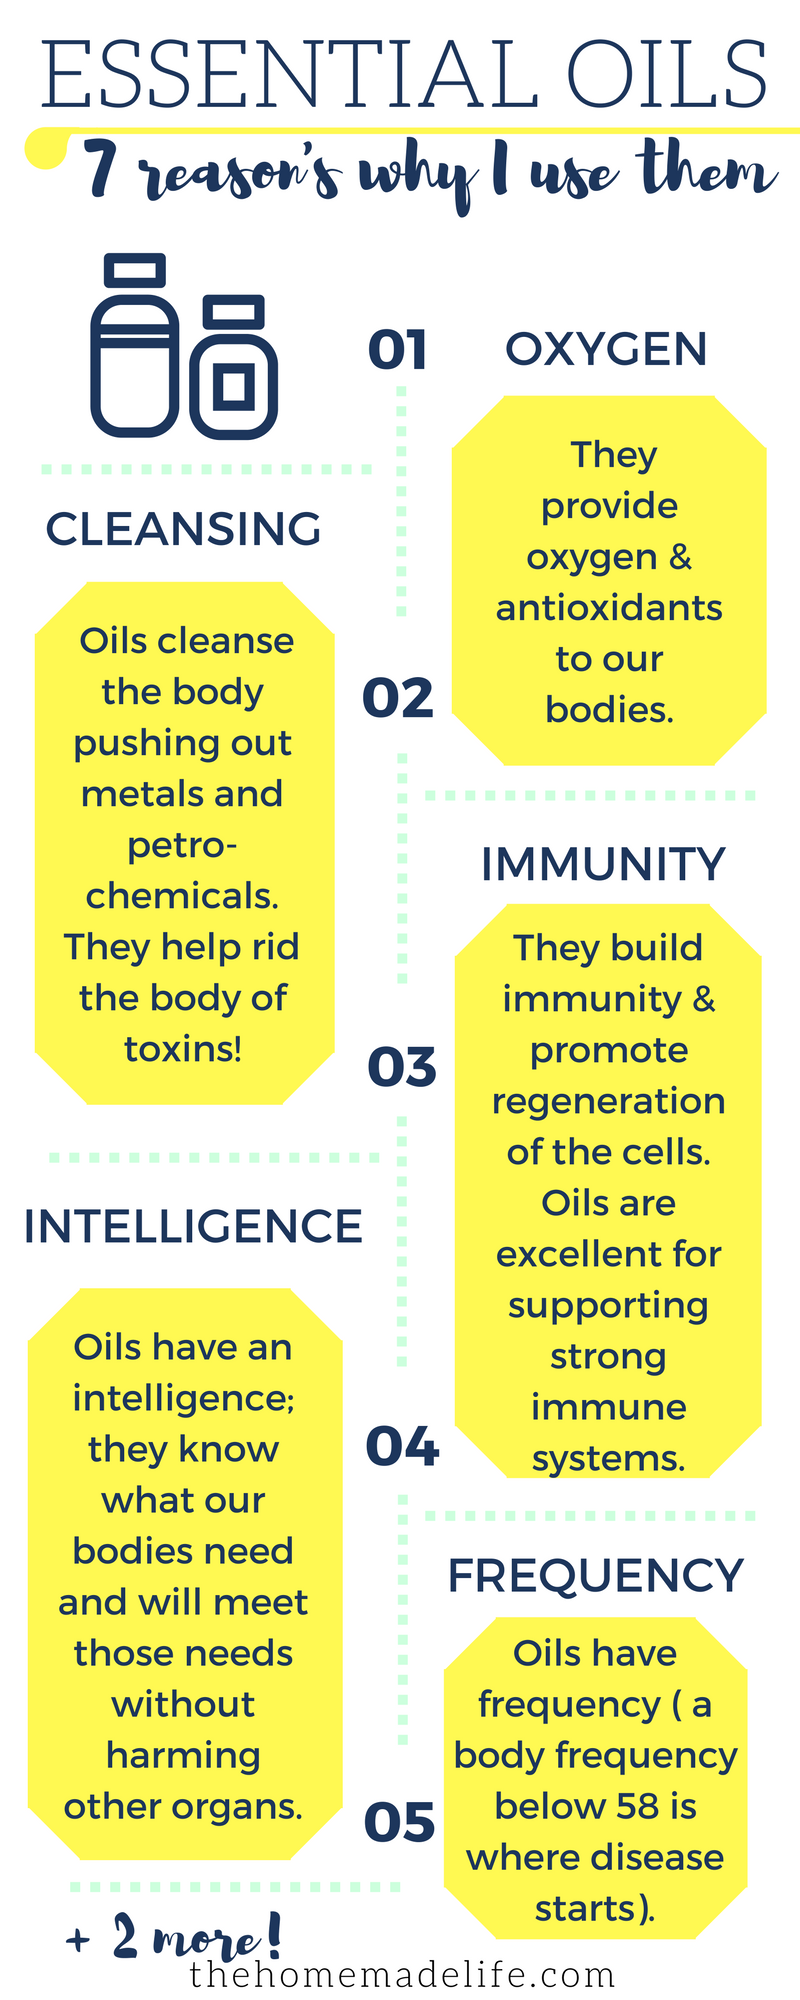 7 reasons why I use essential oils